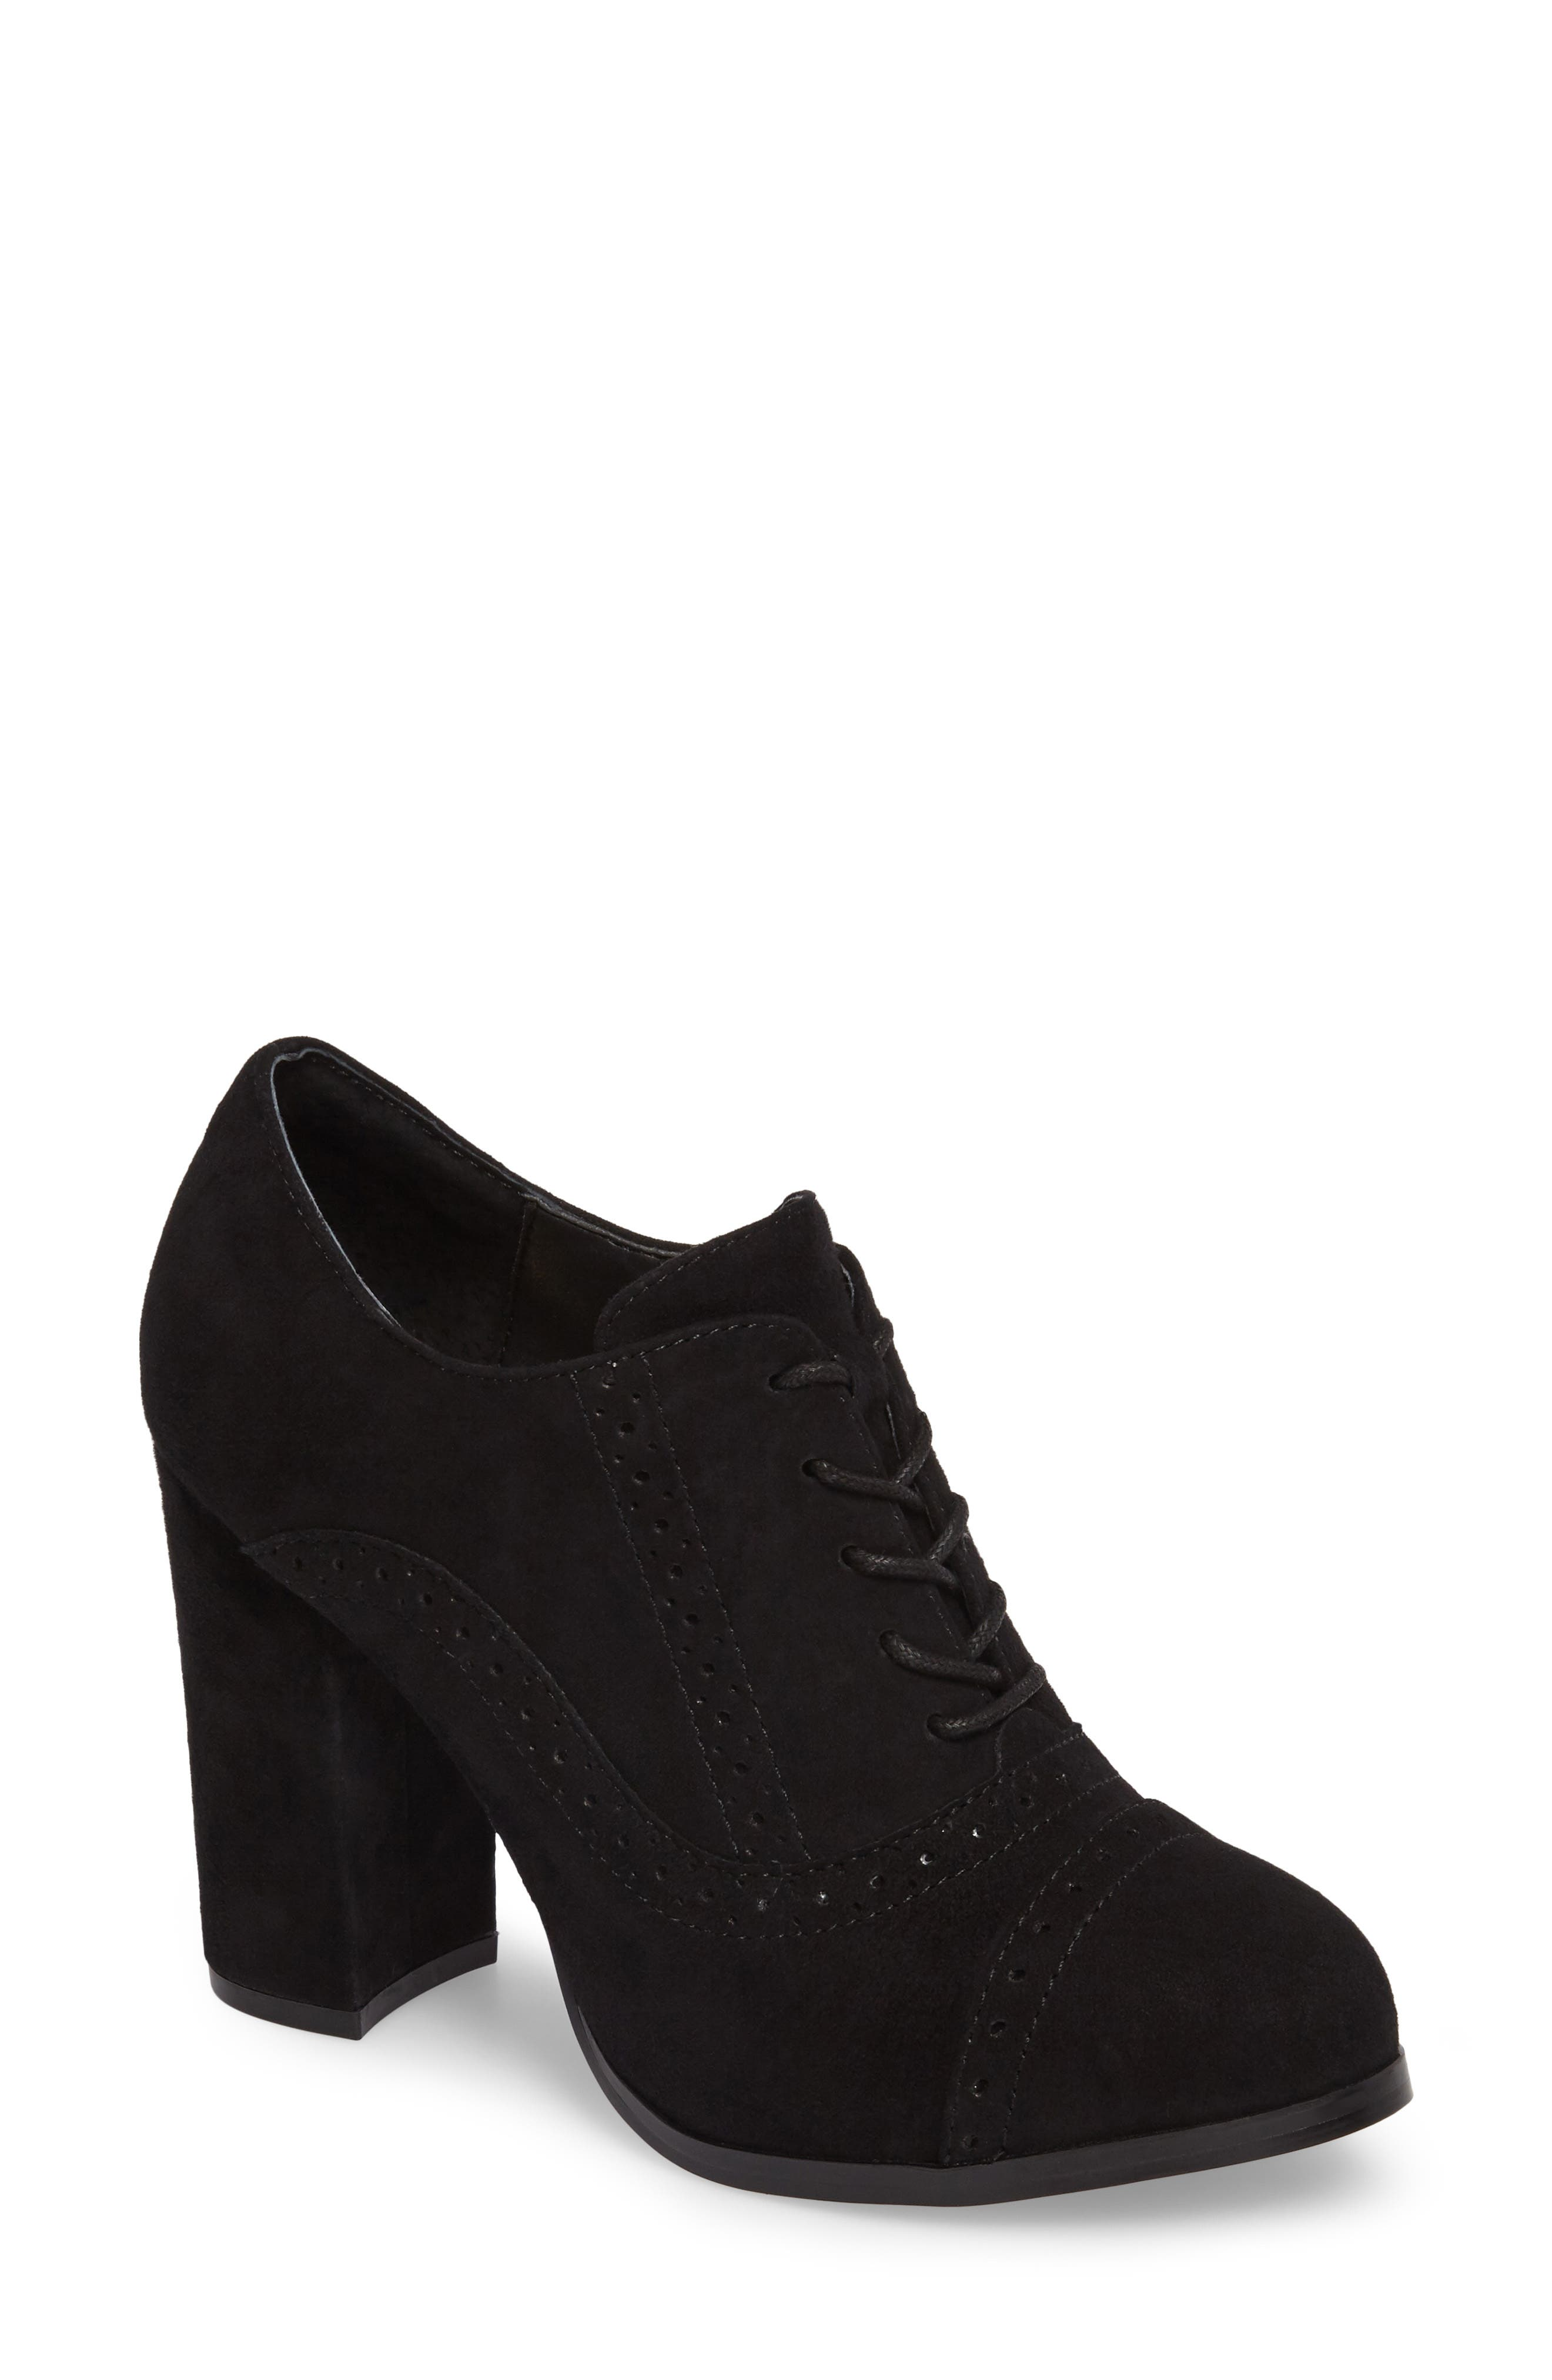 Alternate Image 1 Selected - Isolá Holli Oxford Pump (Women)